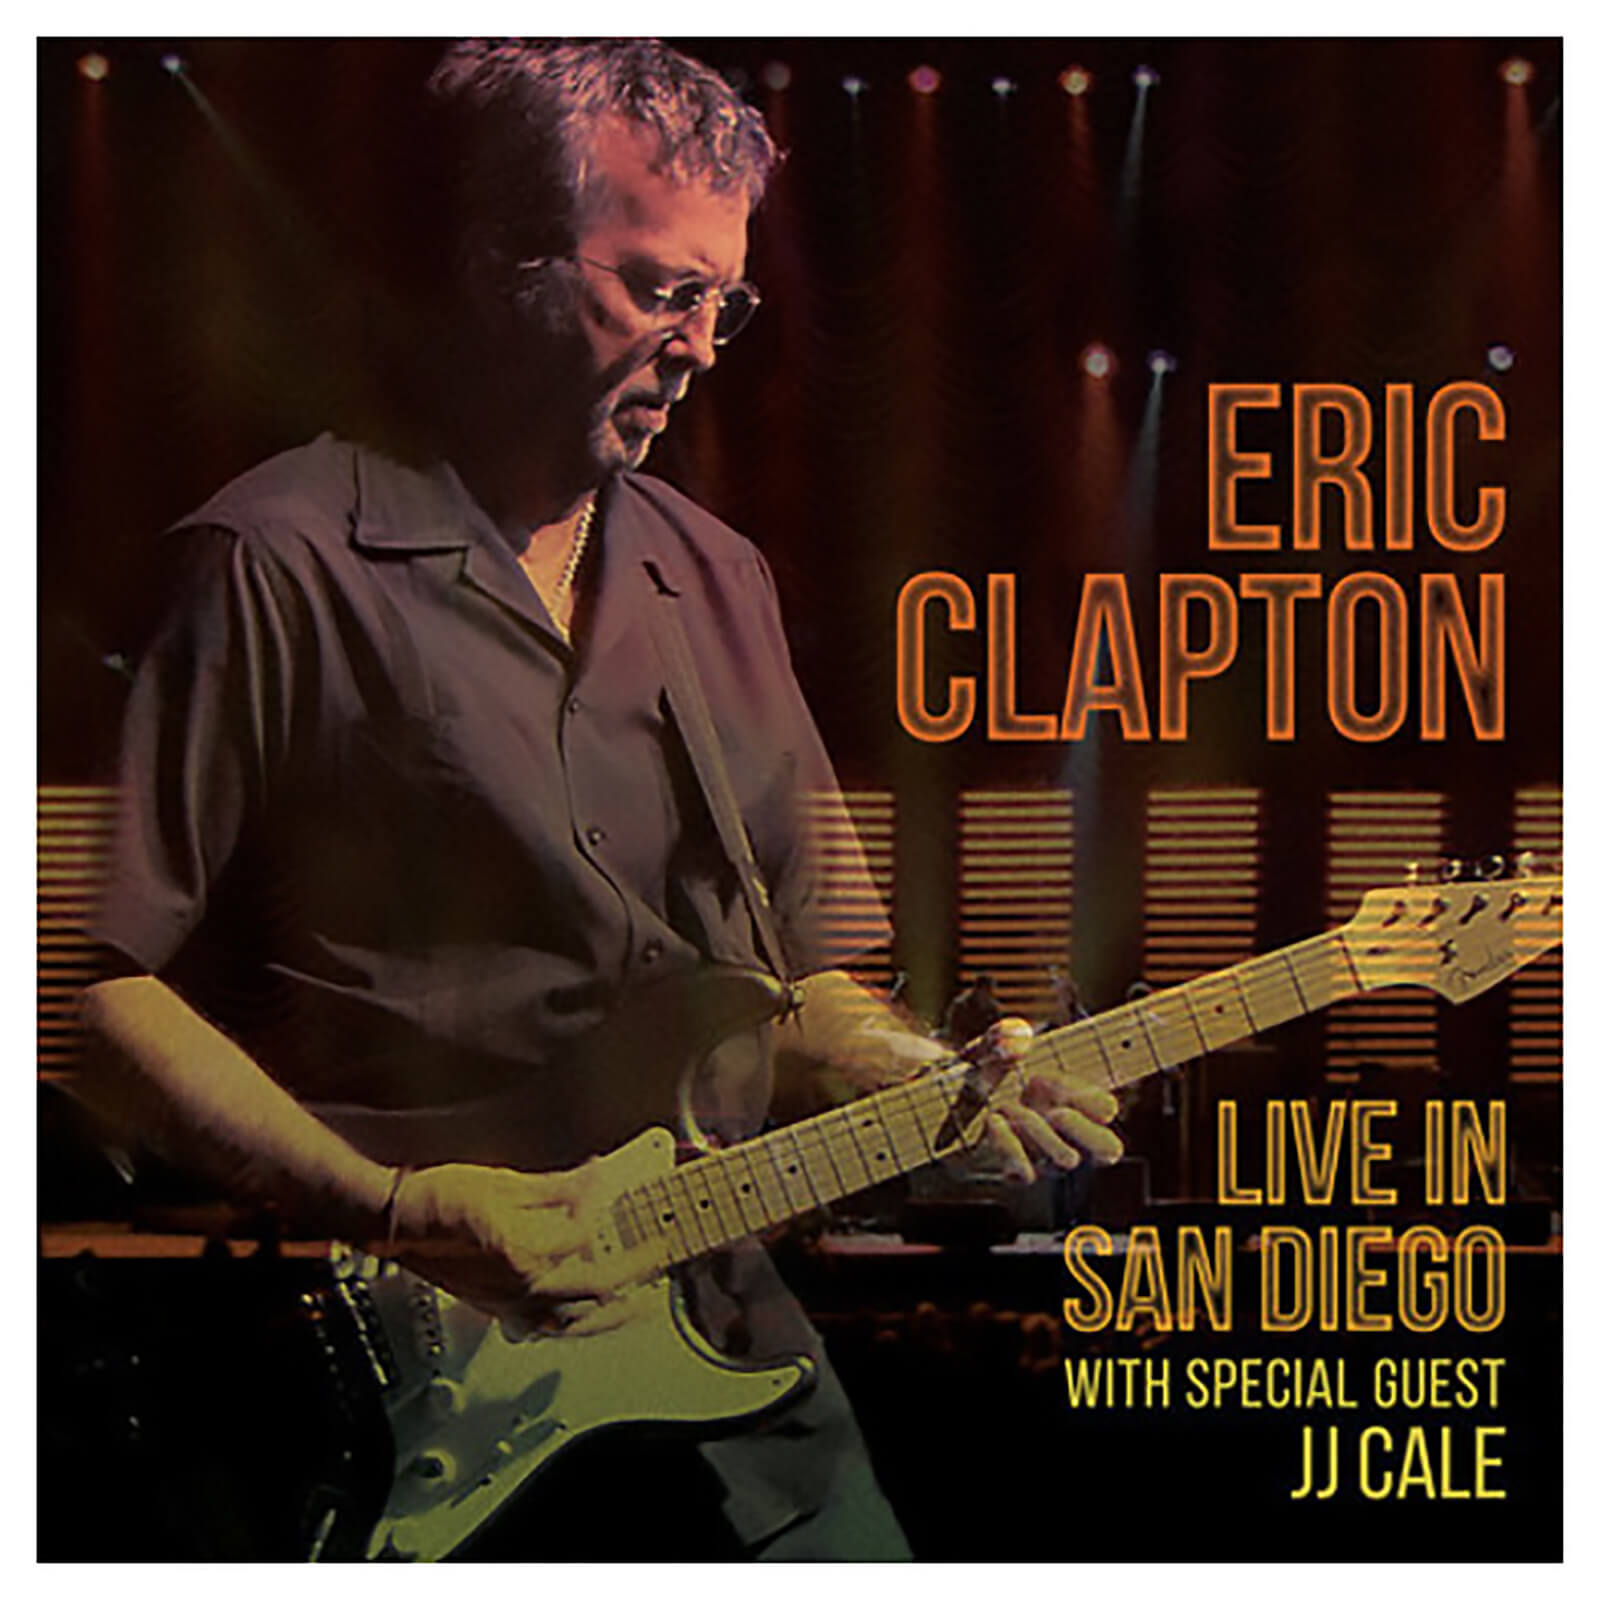 Eric Clapton - Live In San Diego (With Special Guest Jj Cale) - Vinyl